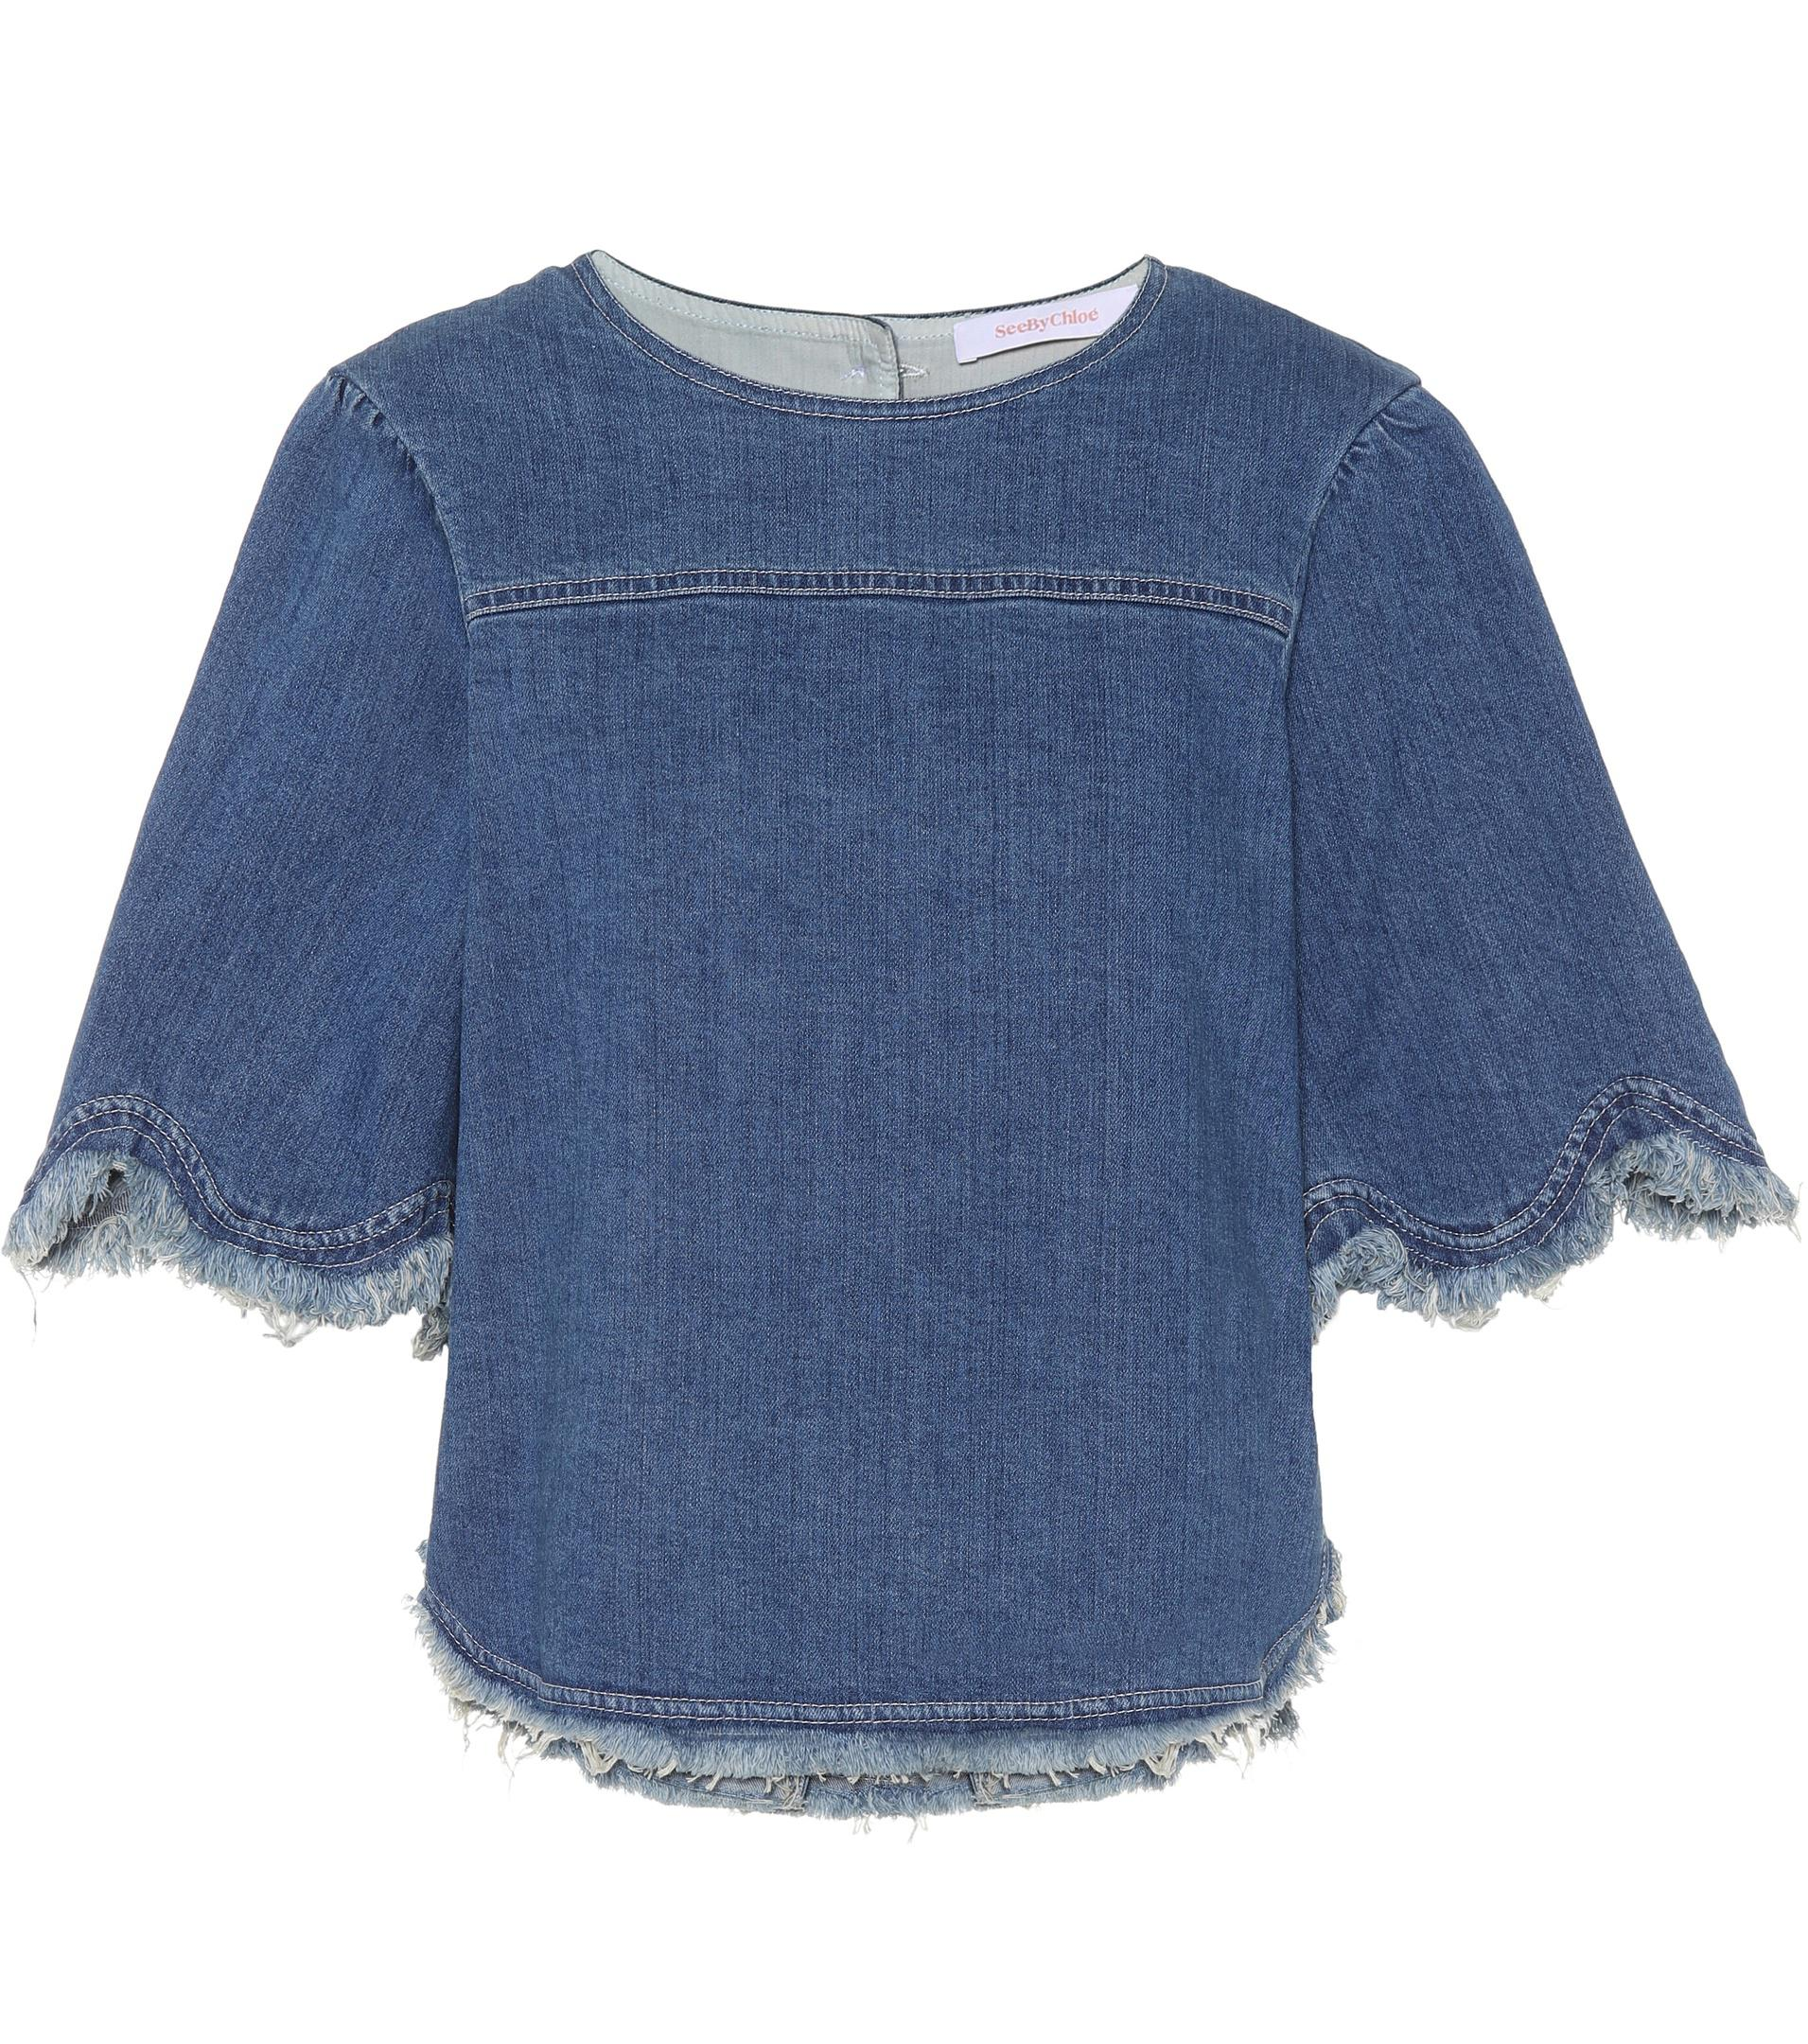 Denim top See By Chloé Fashion Style Sale Online Comfortable Pay With Paypal Cheap Online Outlet Geniue Stockist How Much Cheap Online JhKZi